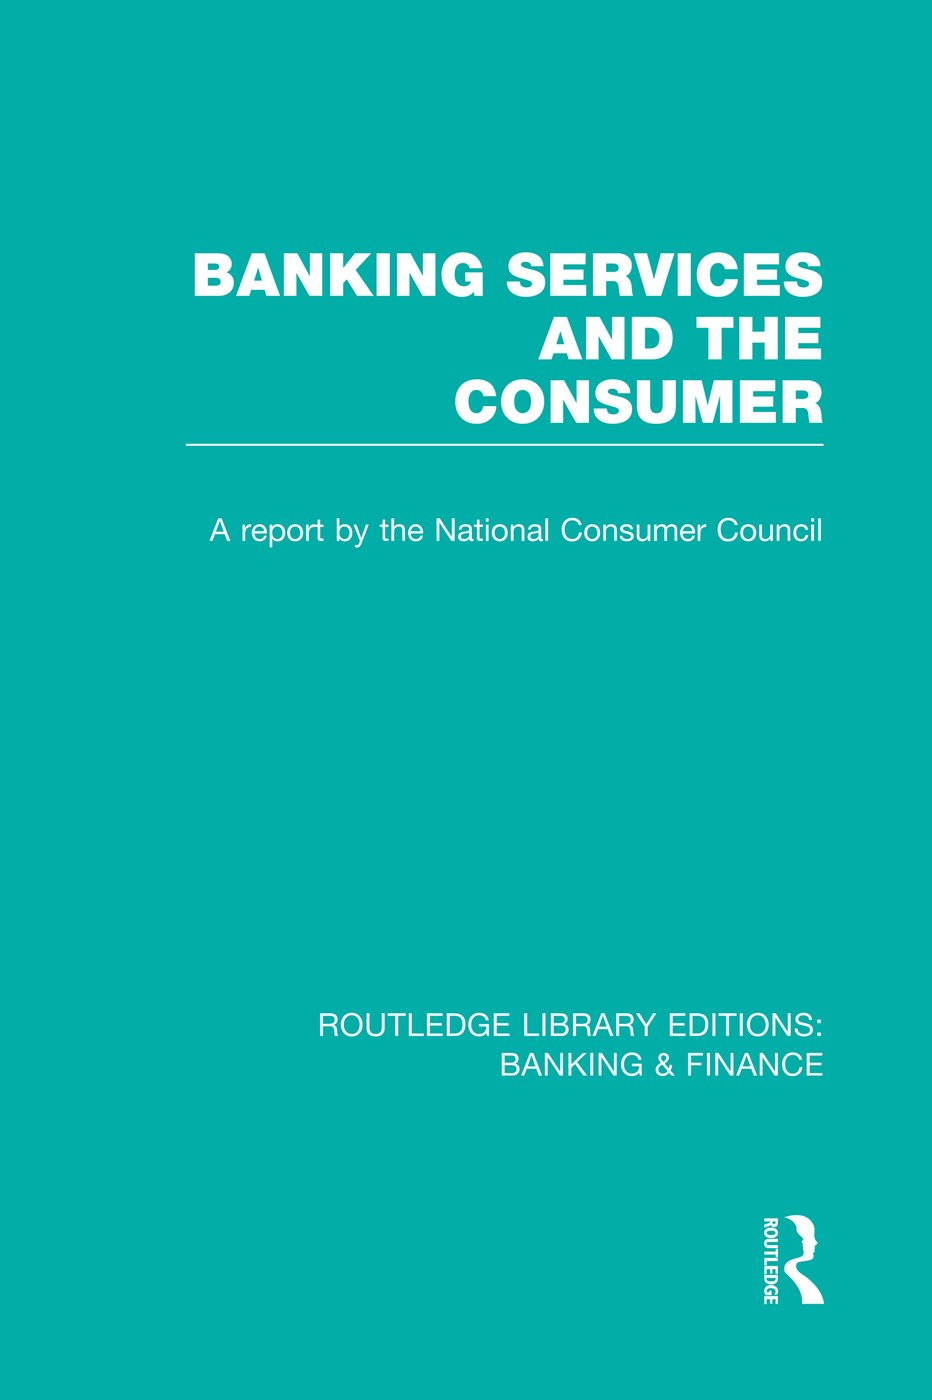 Banking Services and the Consumer (RLE: Banking & Finance) book cover